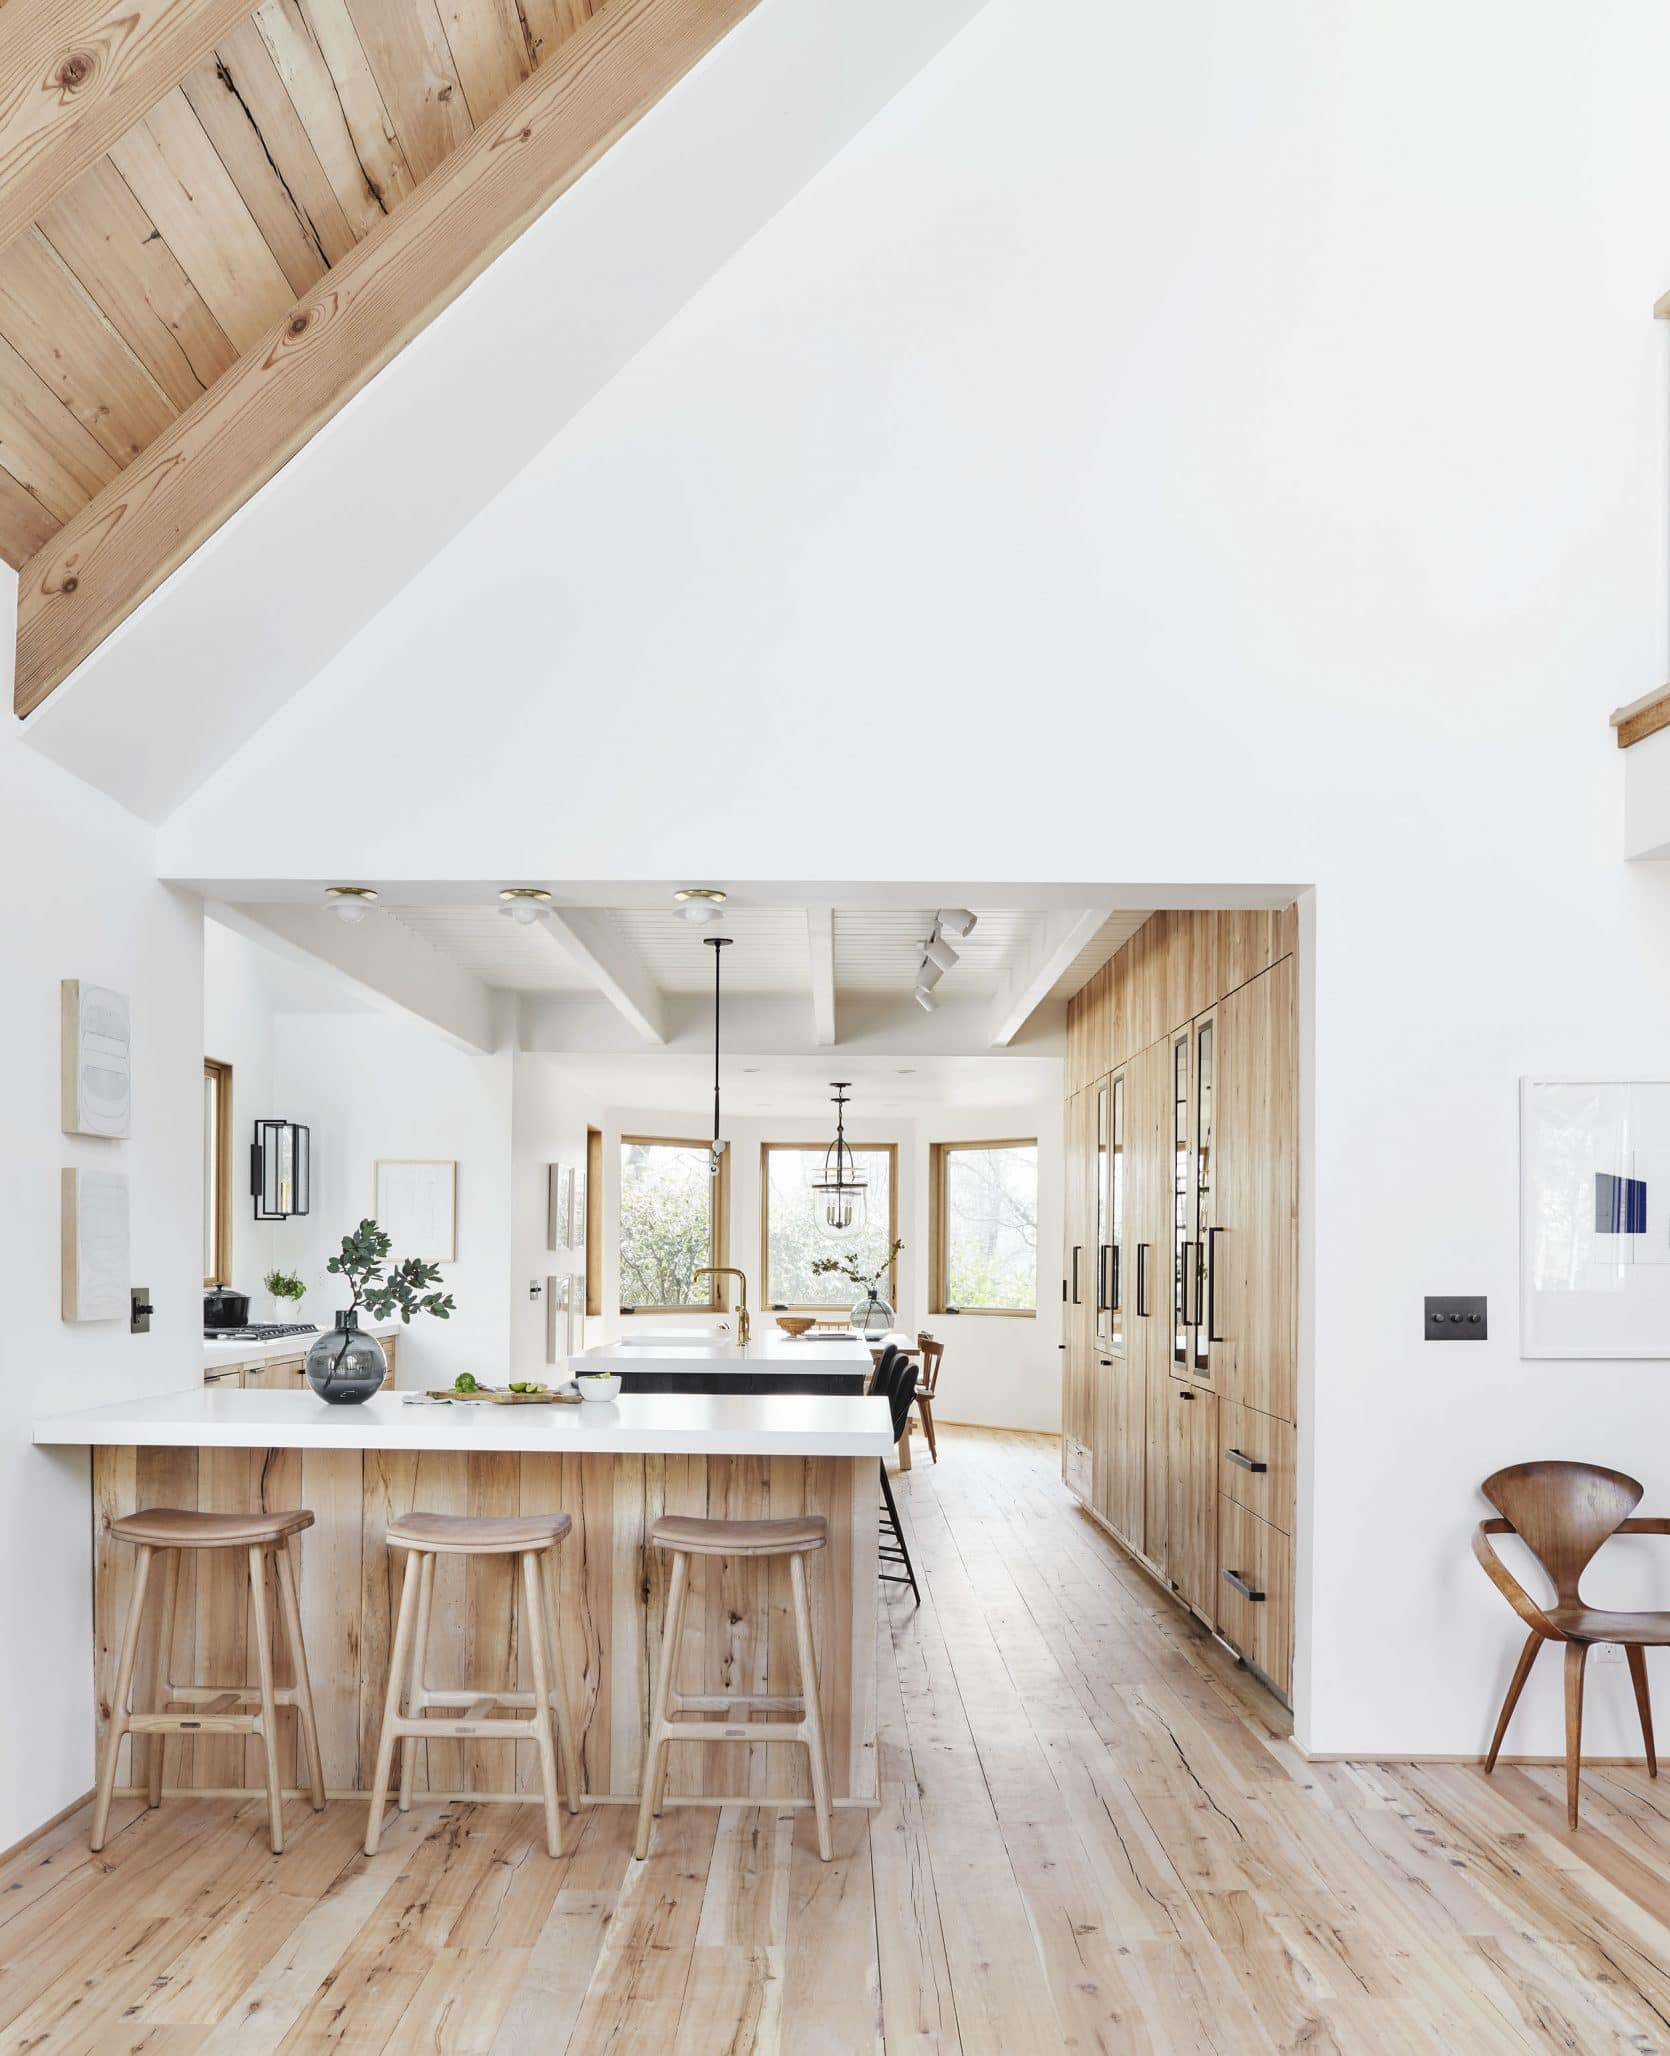 Wood and white kitchen designed by @em_henderson